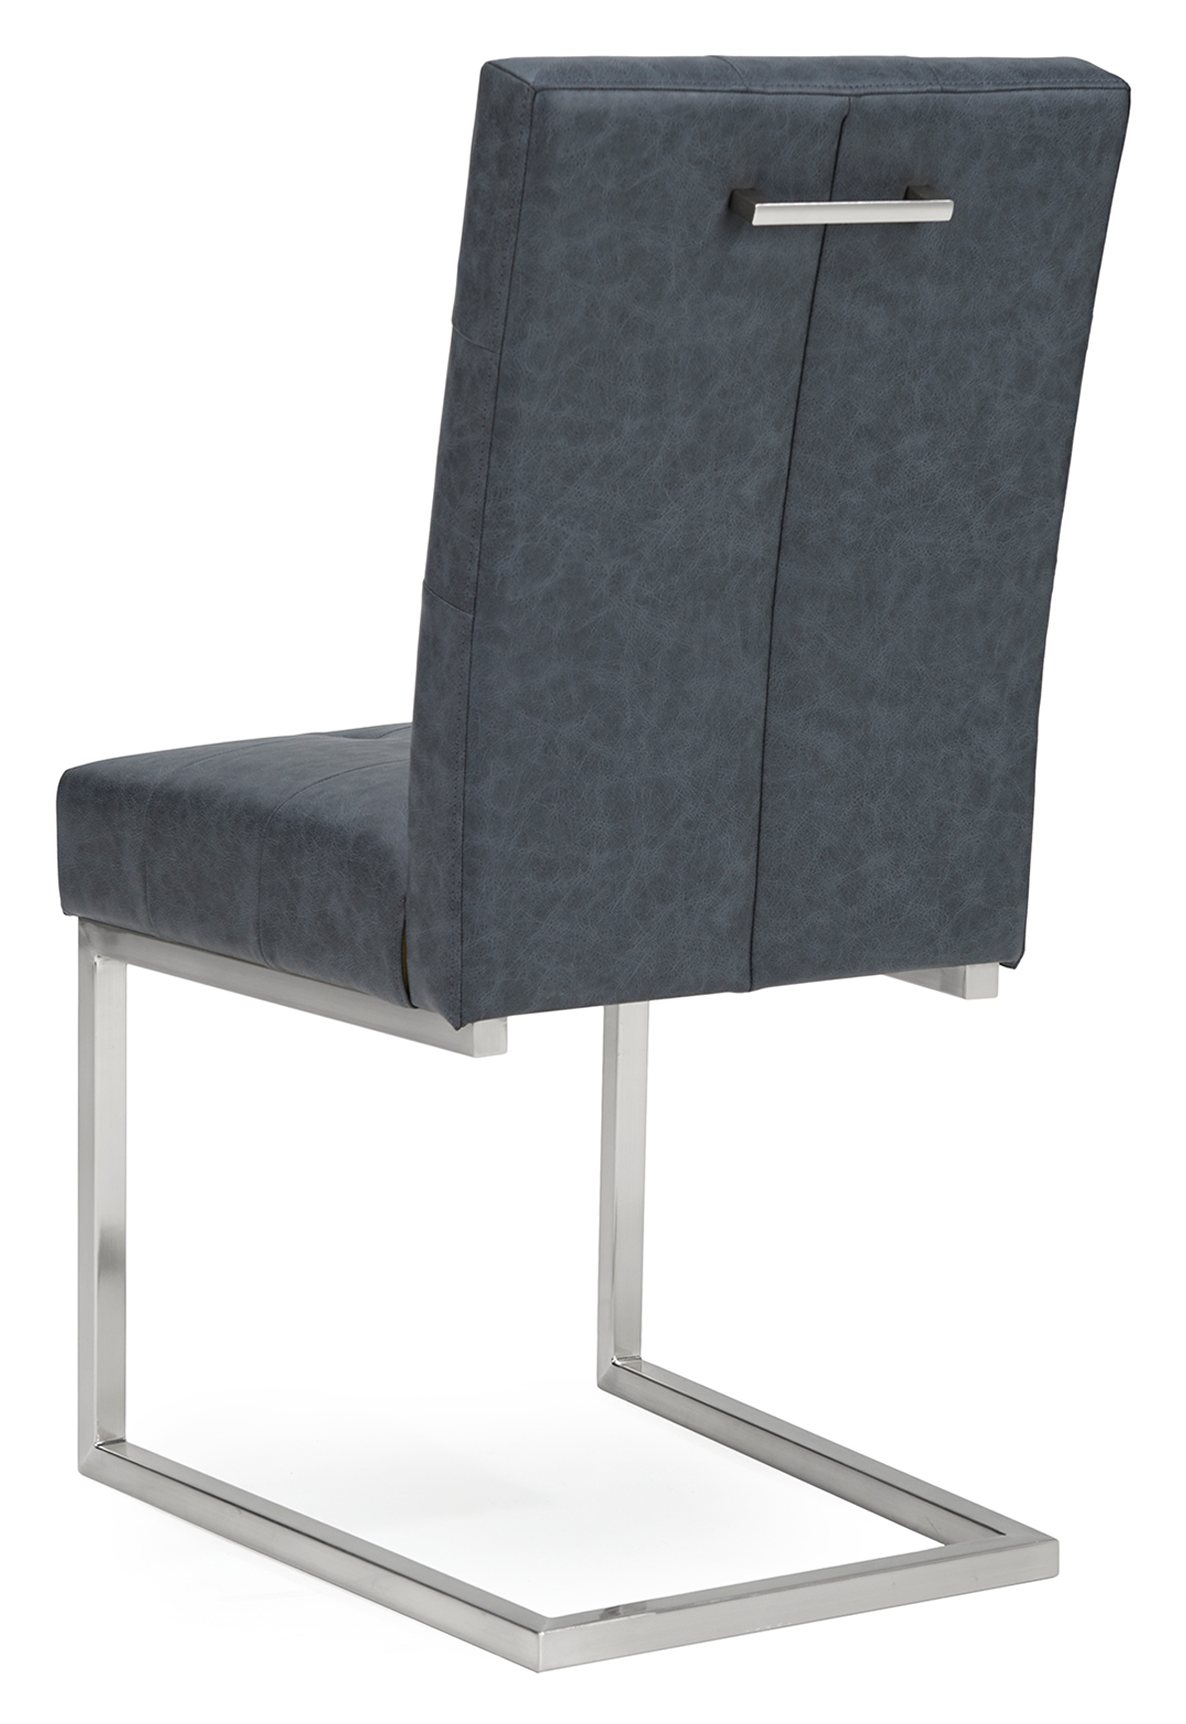 BRINDISI BONDED LEATHER DINING CHAIR - BACK DETAIL